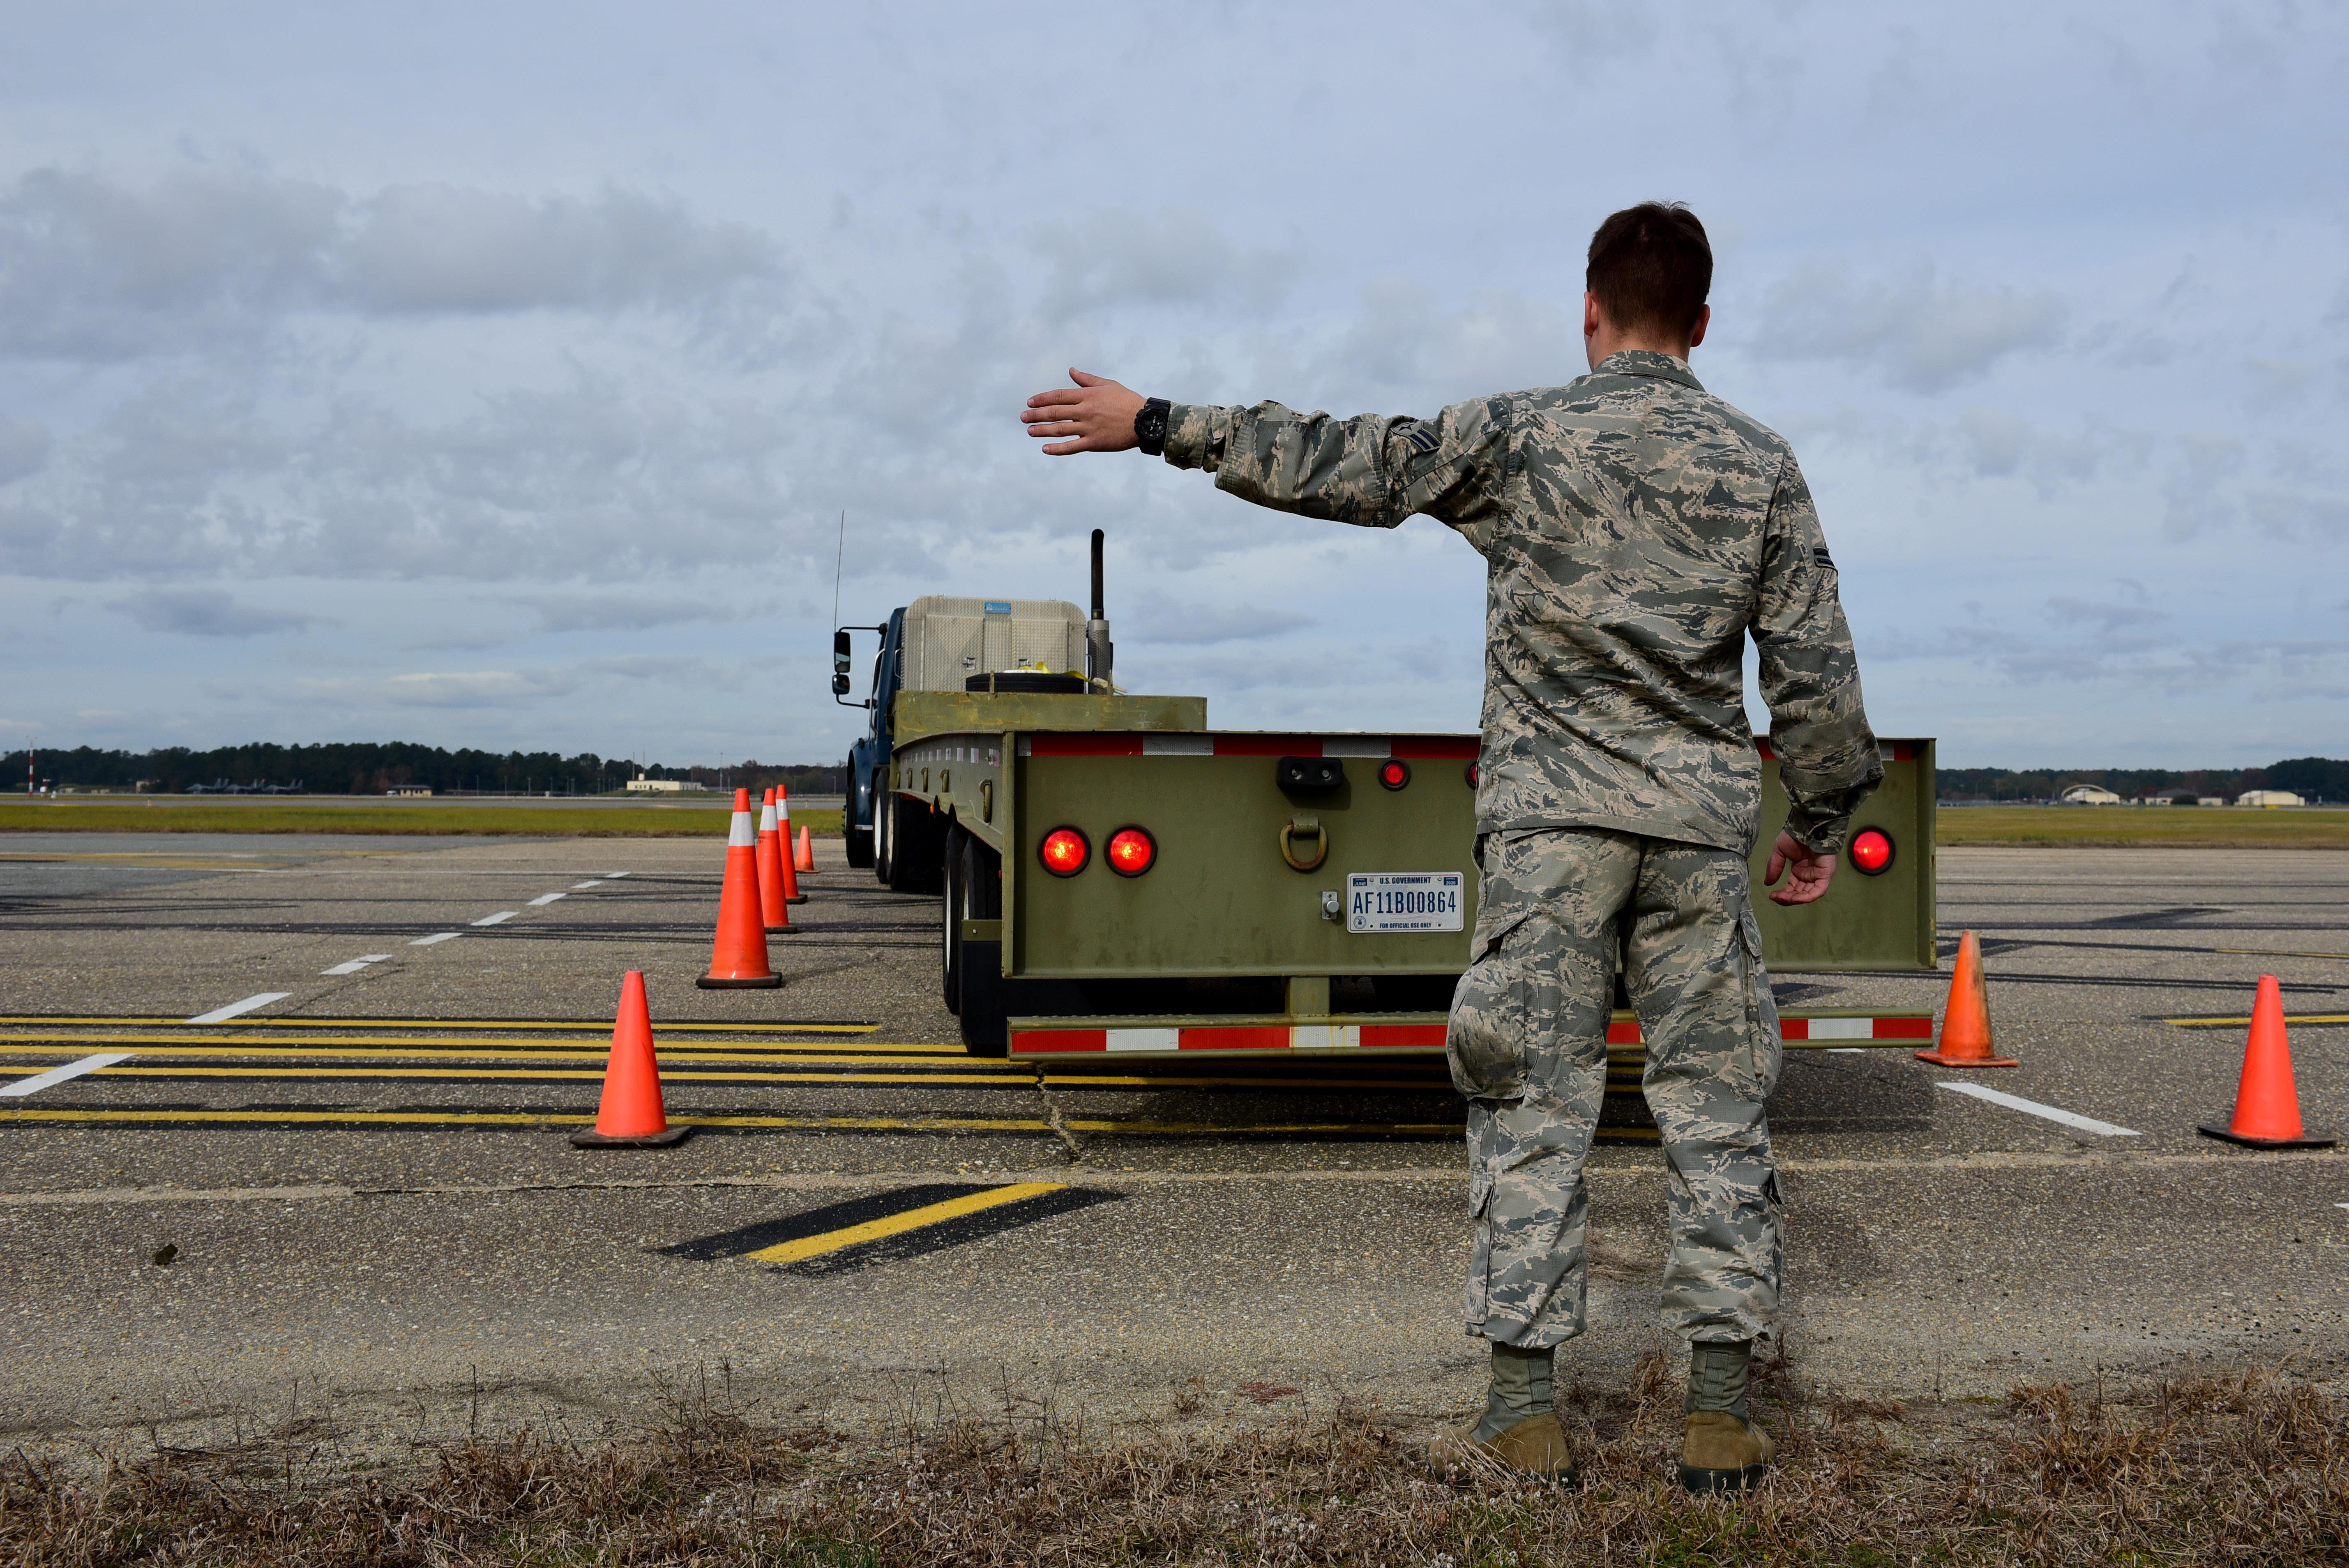 4th LRS are MVPs in recent 336th FS deployment: Vehicle Ops